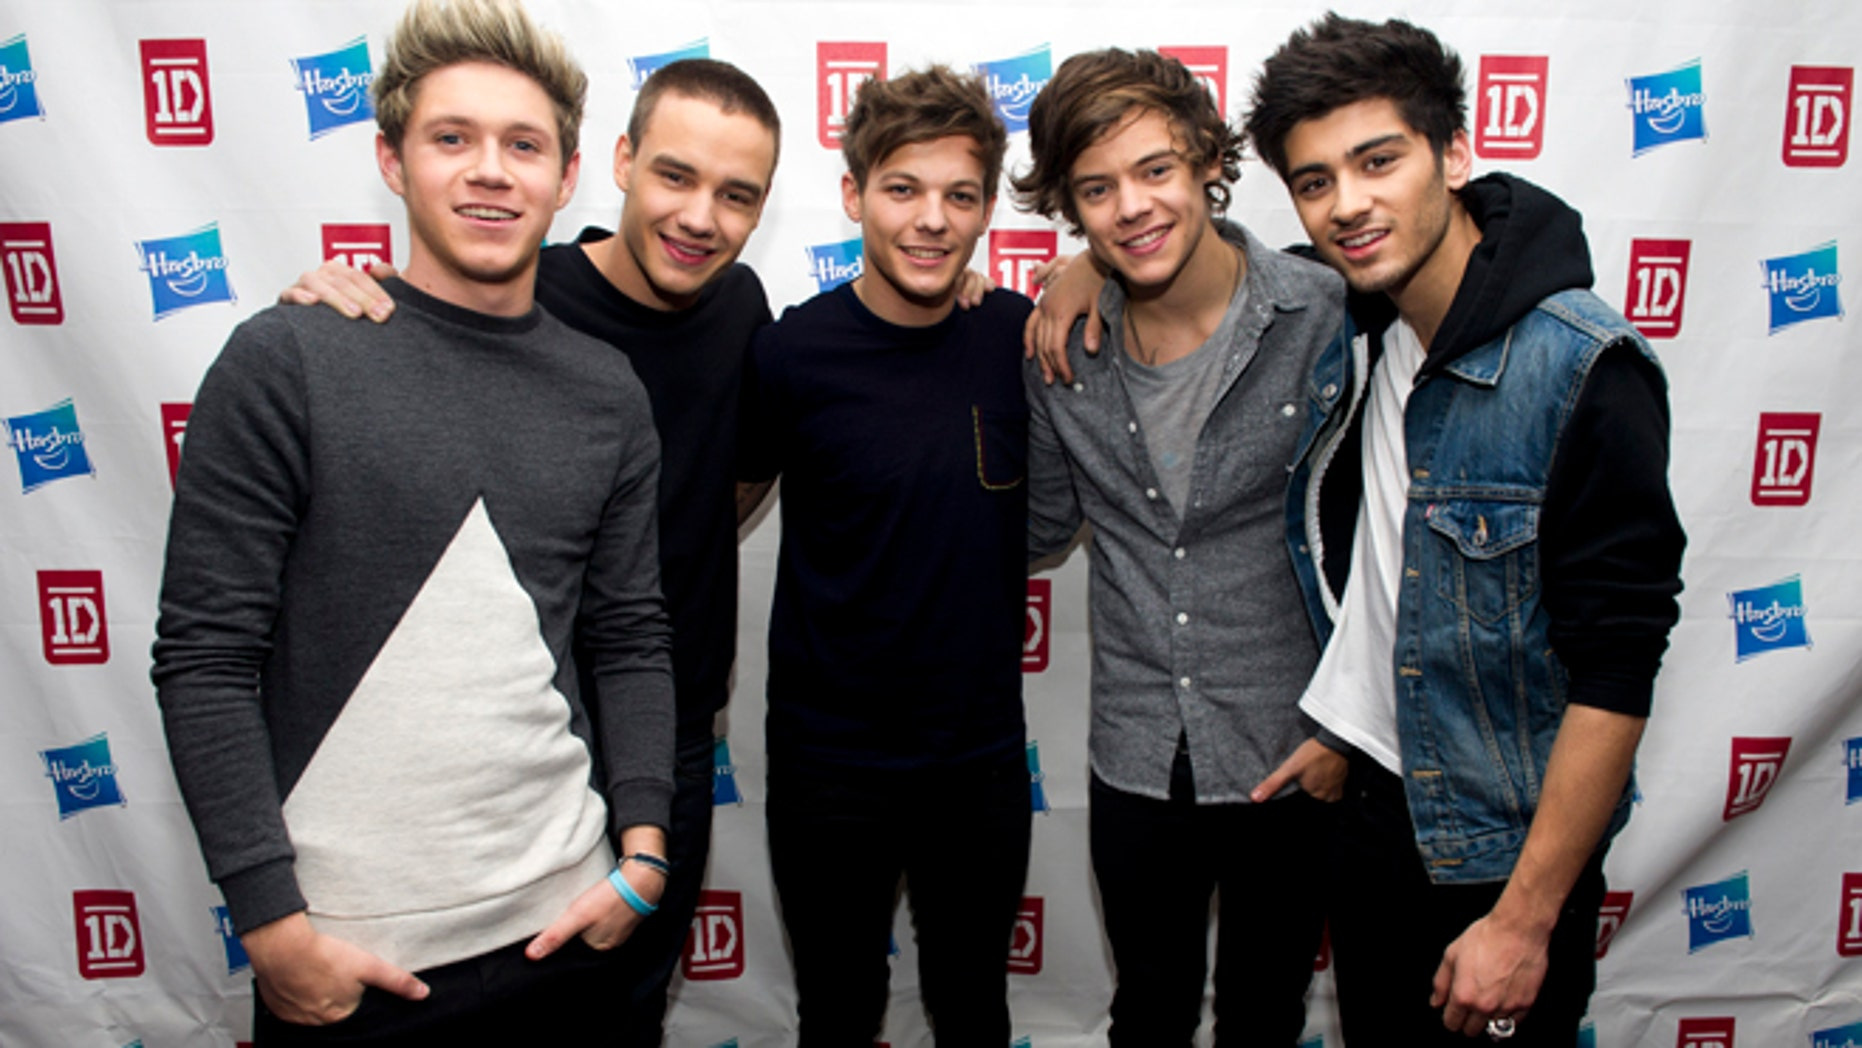 This Nov. 26, 2012 file photo released by hasbro shows members of One Direction, from left, Niall Horan, Liam Payne, Louis Tomlinson, Harry Styles and Zayn Malik at a Hasbro press event in New York.